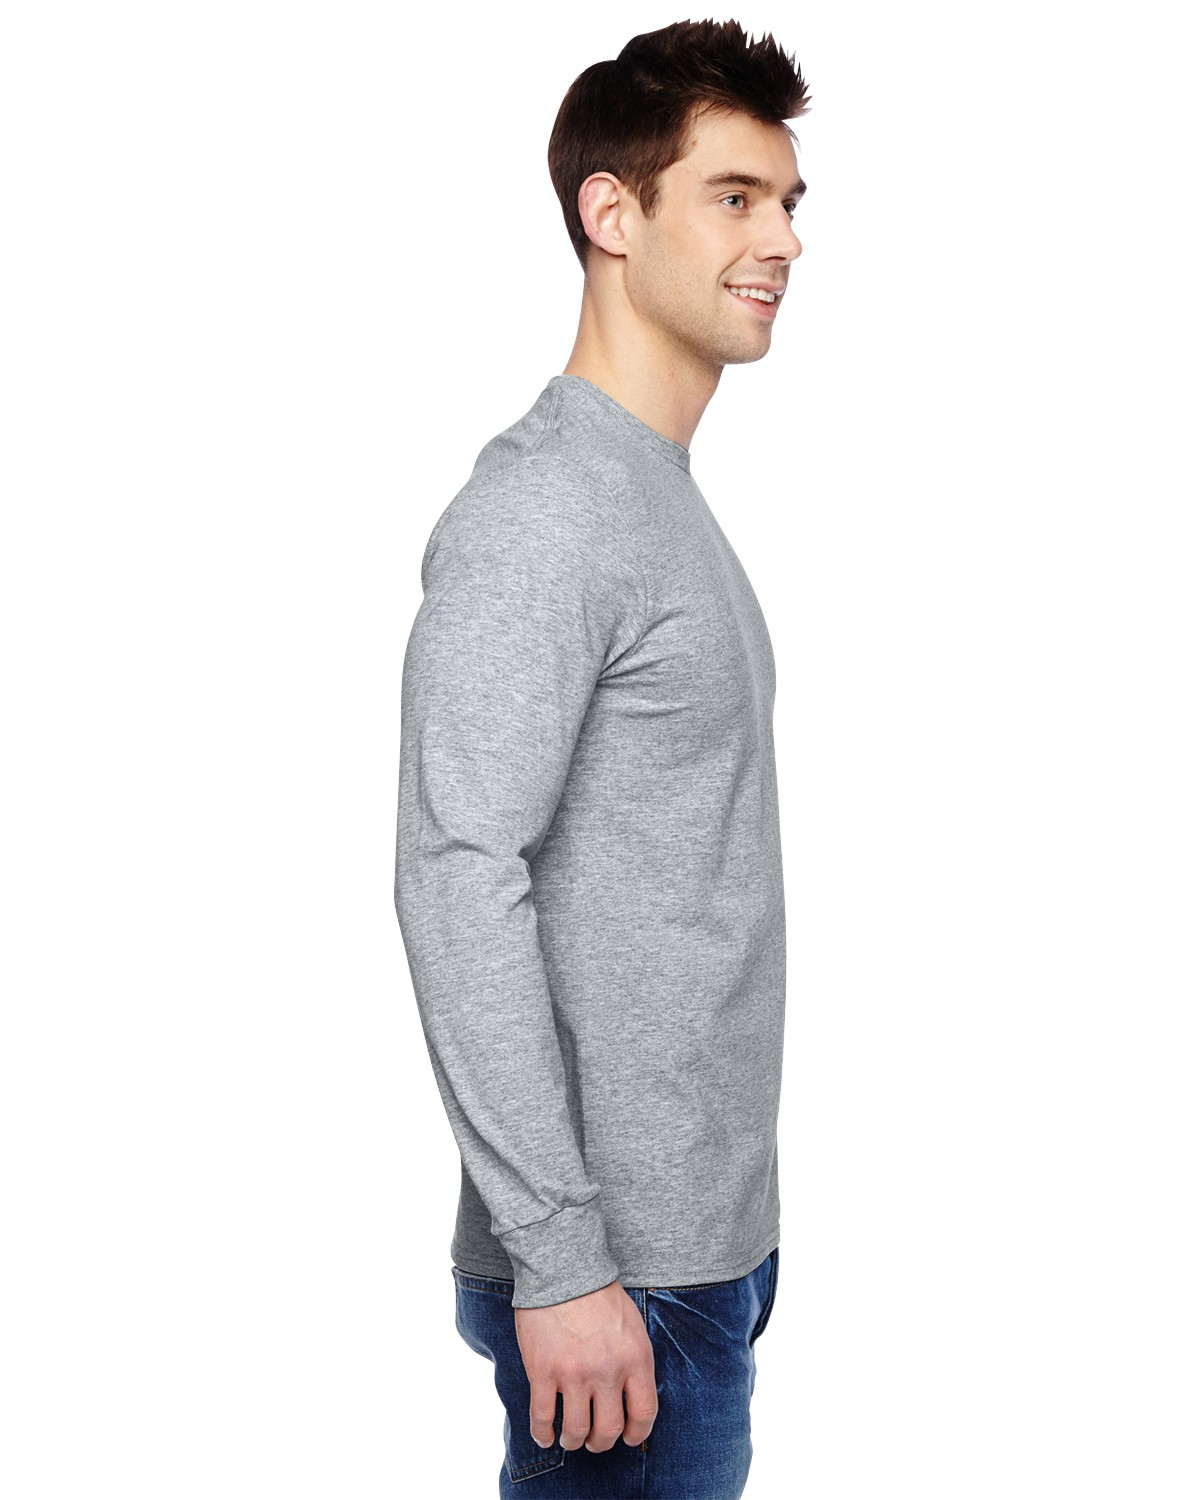 SFLR Fruit of the Loom ATHLETIC HEATHER